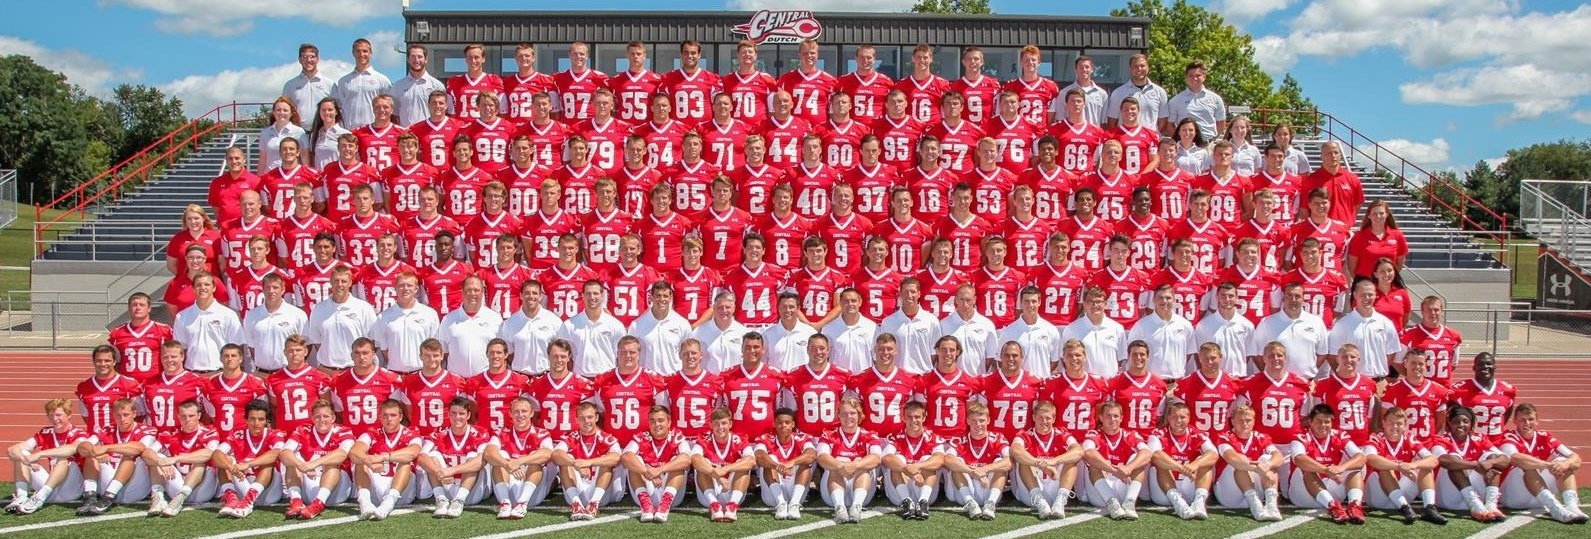 2016 Football Roster Central College Athletics